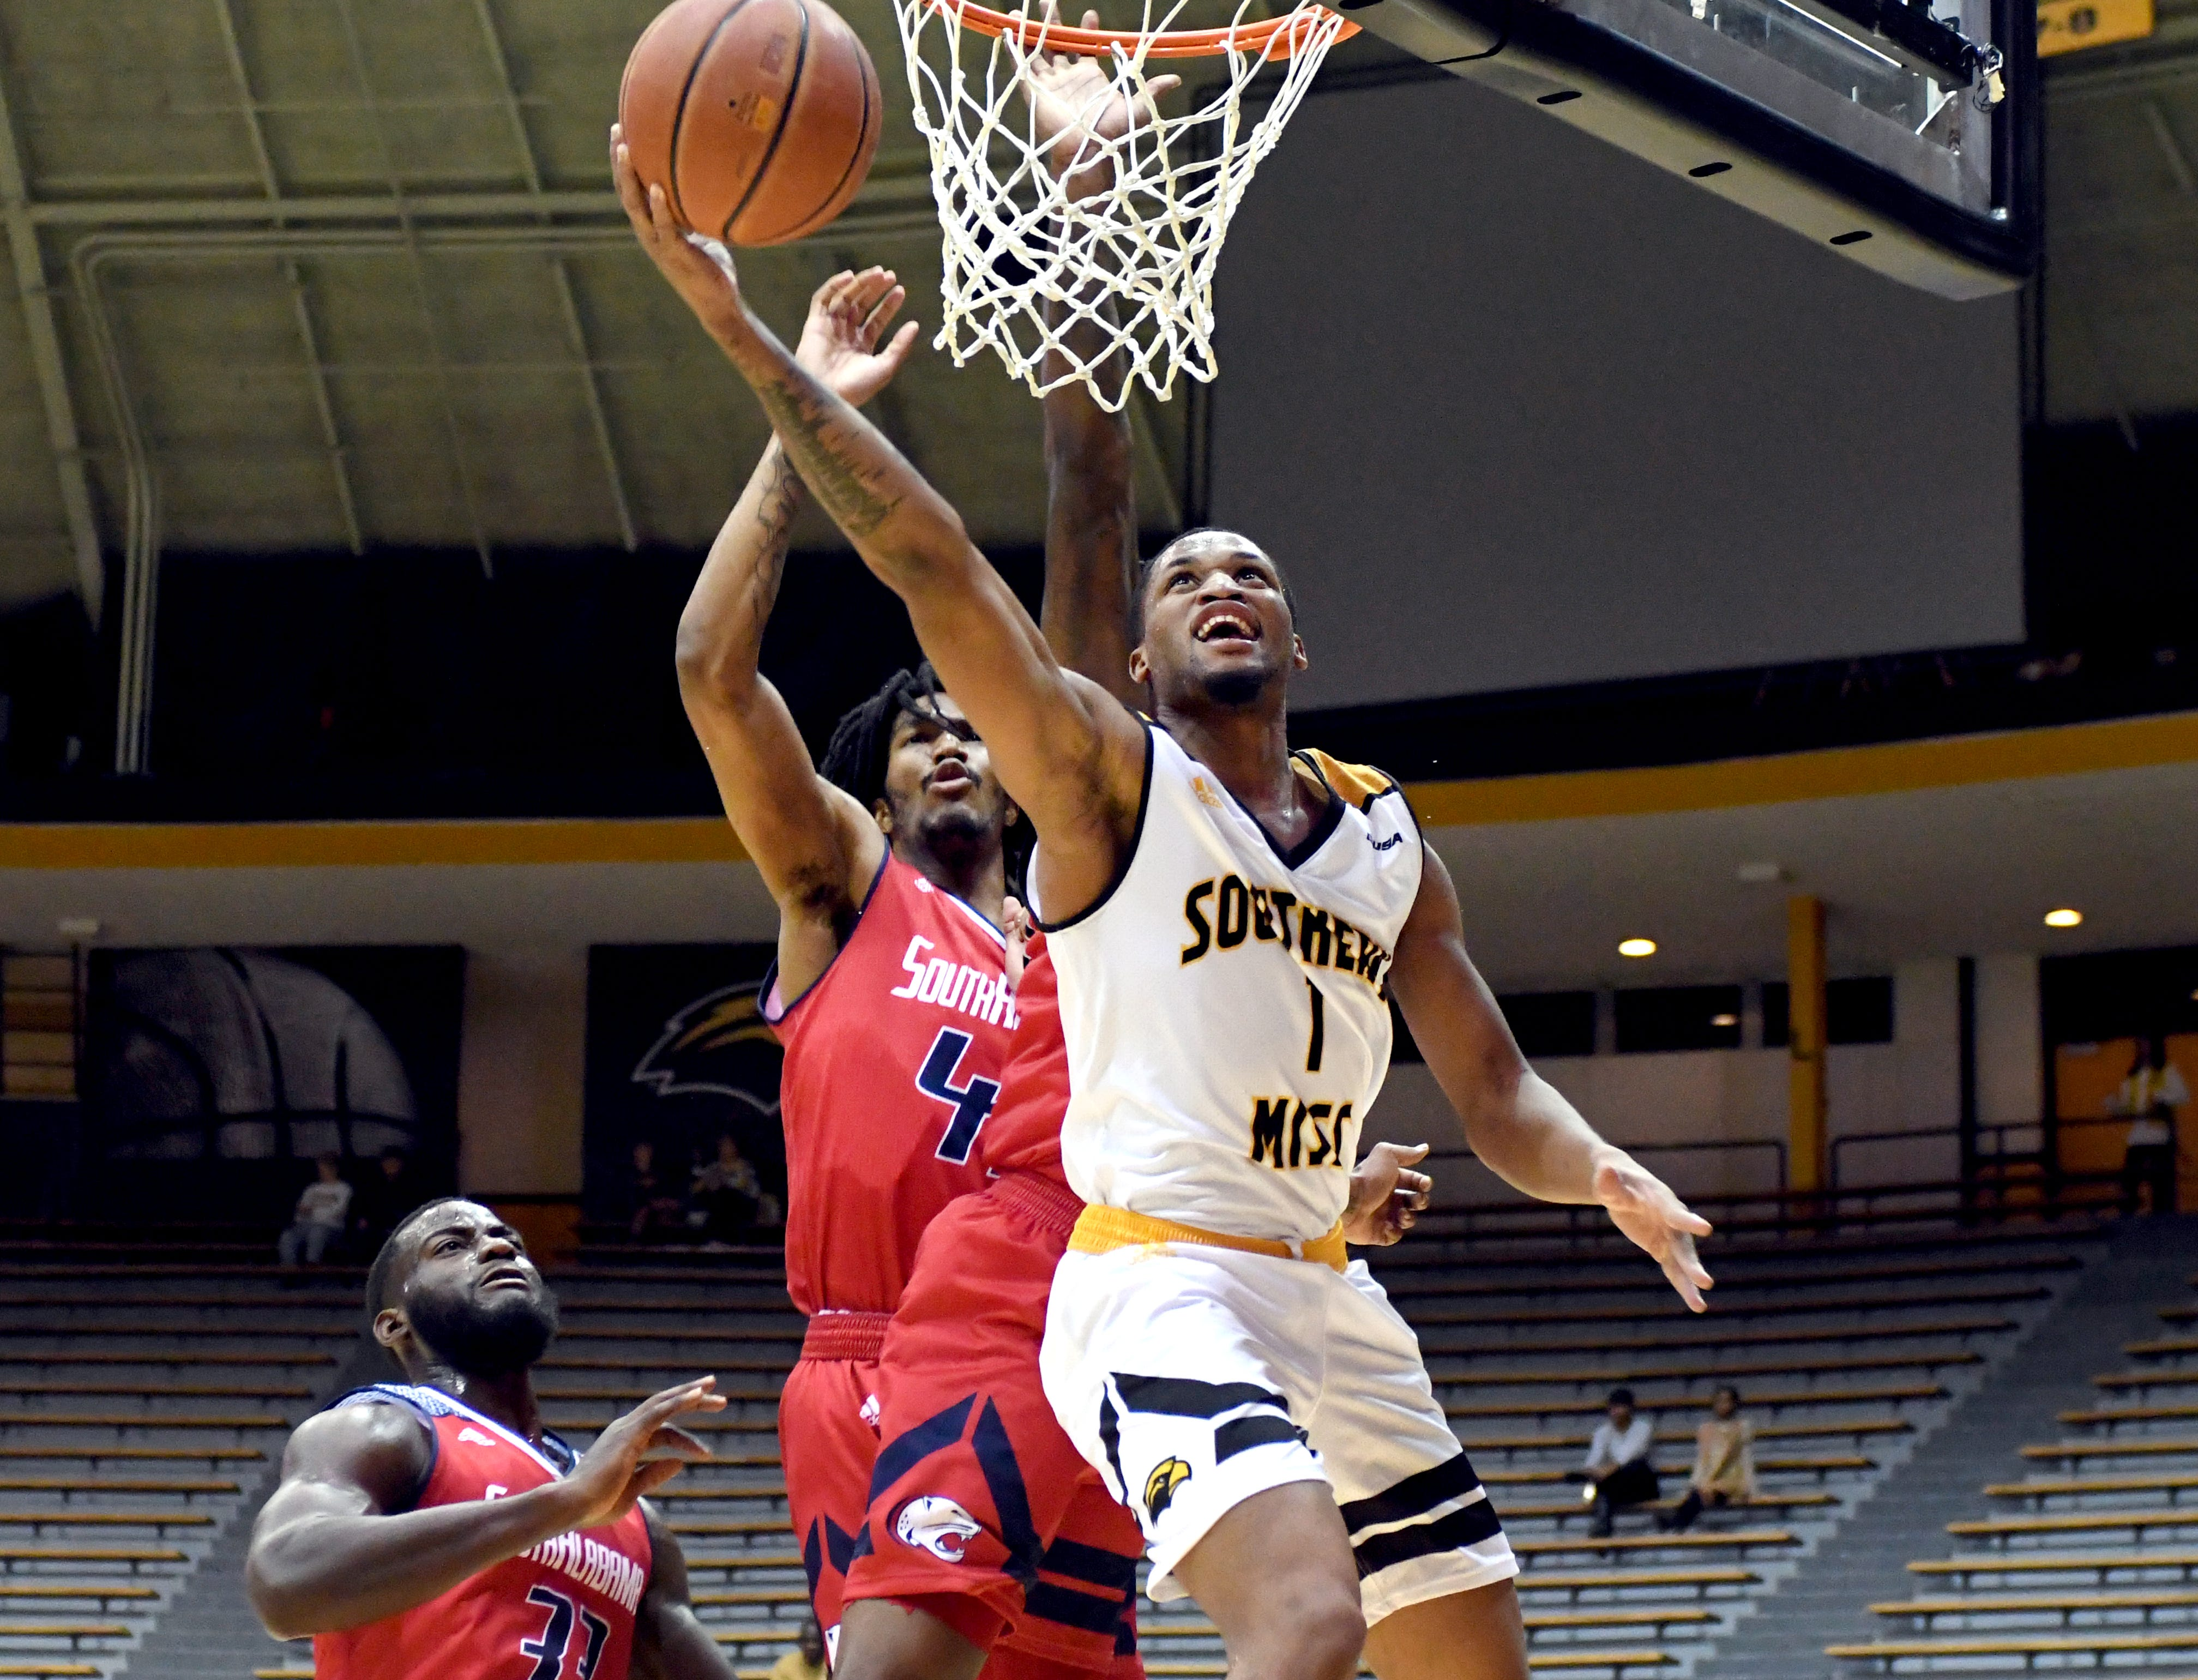 Southern Miss guard Cortez Edwards goes for a lay up in a game against South Alabama in Reed Green Coliseum on Wednesday, November 28, 2018.